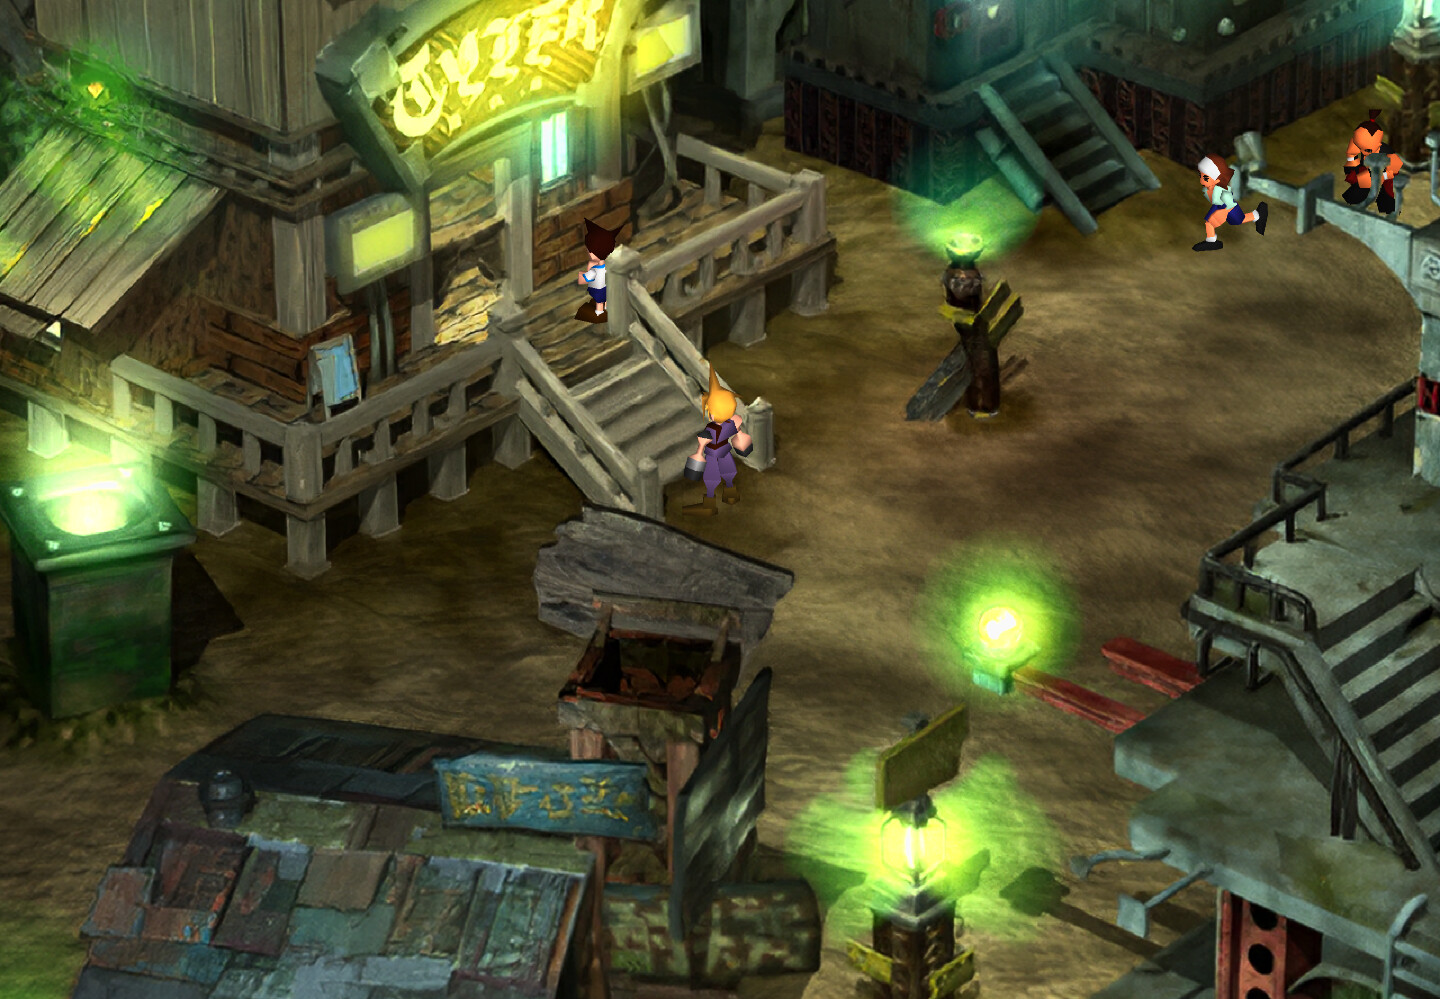 Final Fantasy Vii Mod Uses Ai Neural Network To Boost